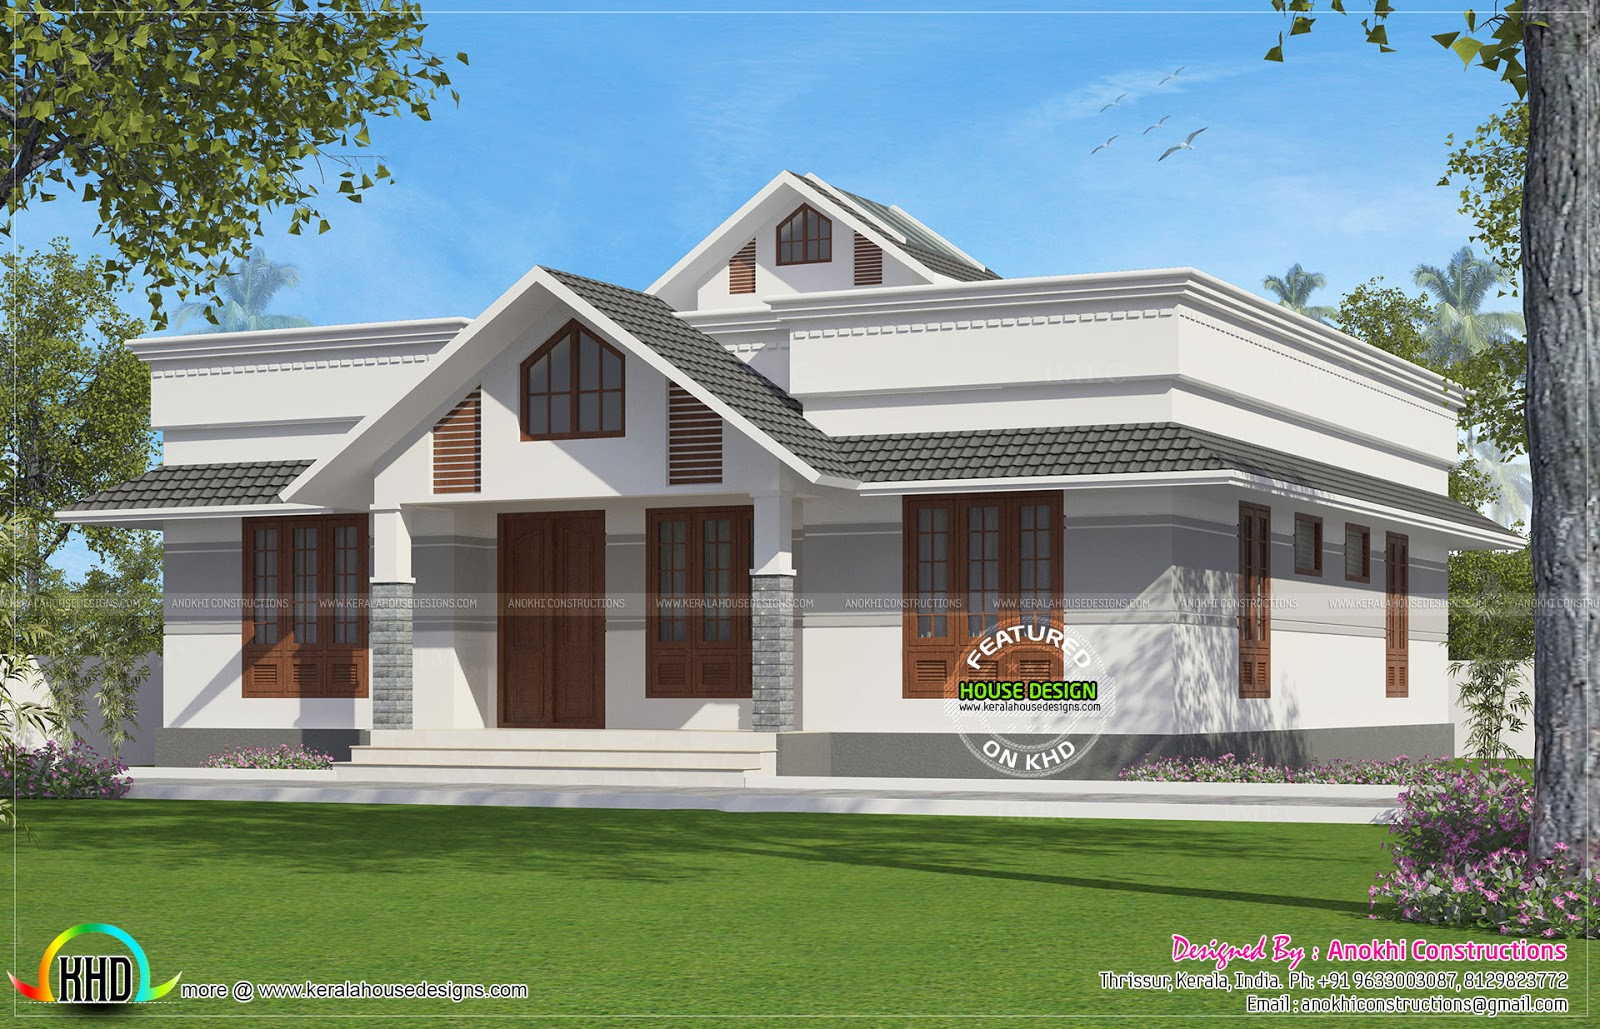 1330 square feet small house plan kerala home design and for Small house design kerala style